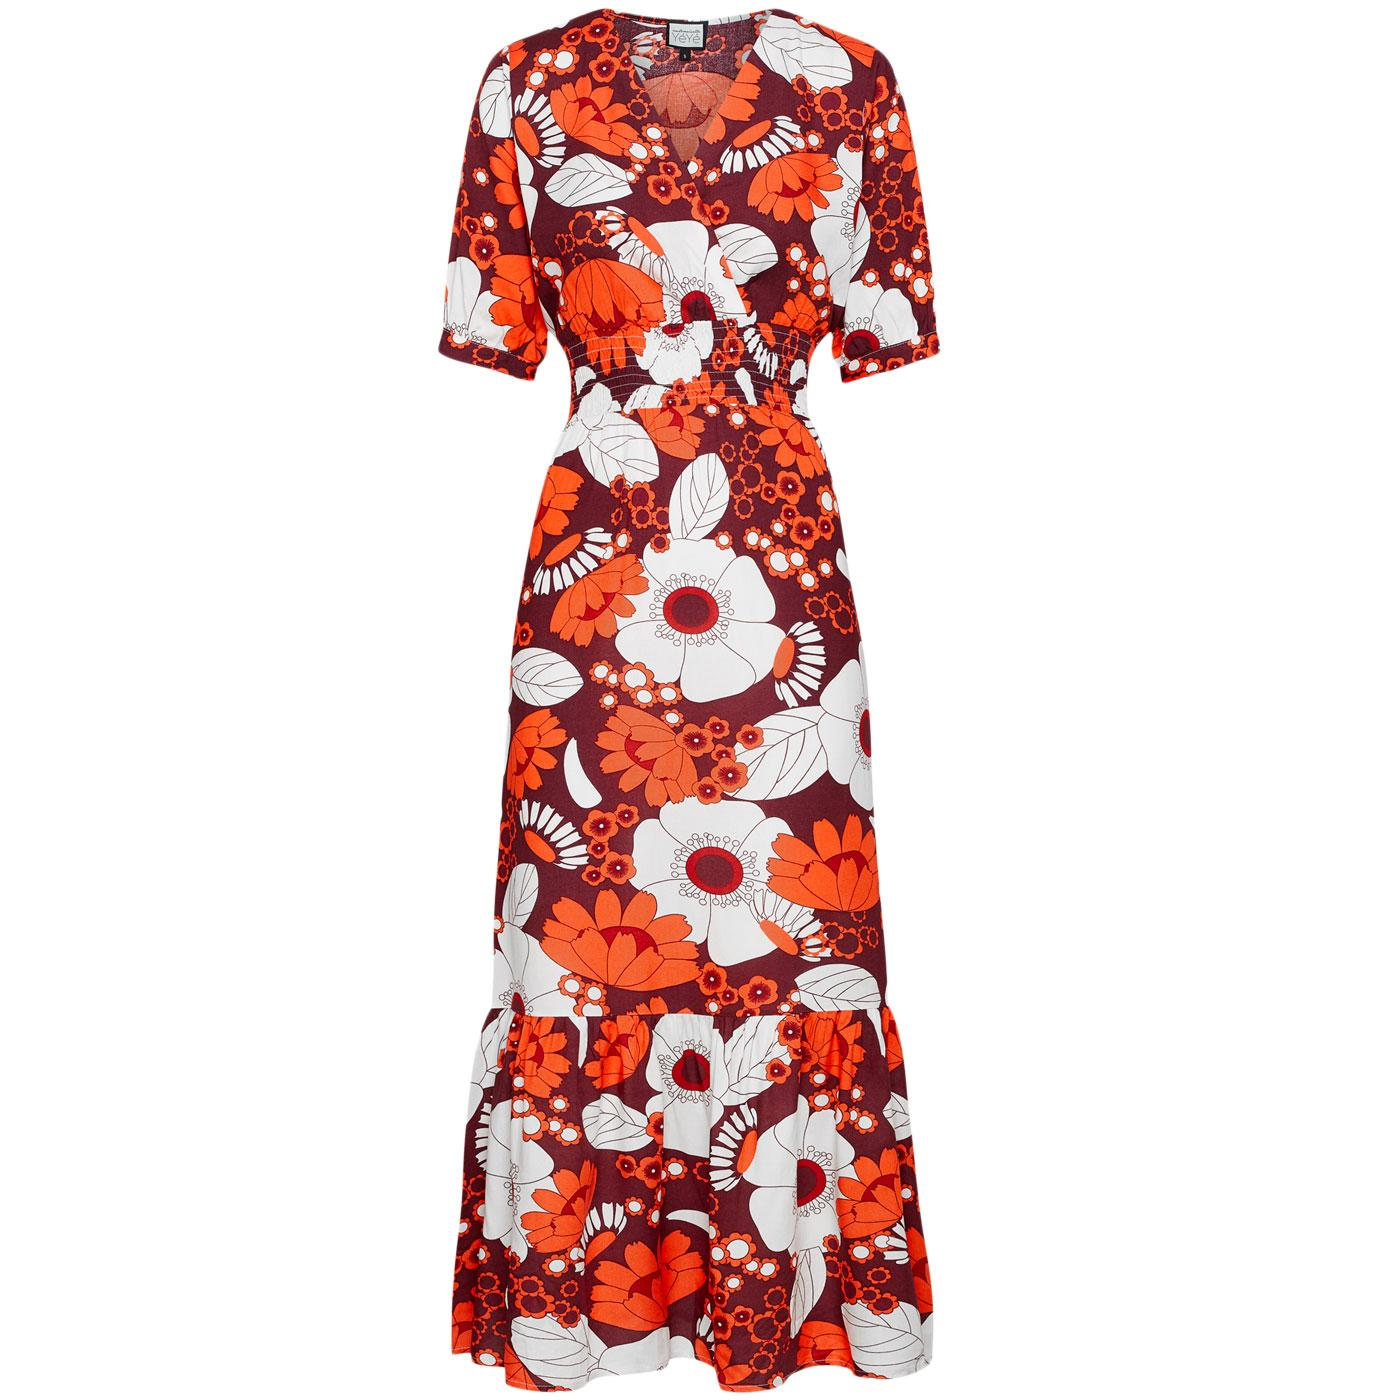 Mademoiselle YeYe Pow! To The People Floral Dress